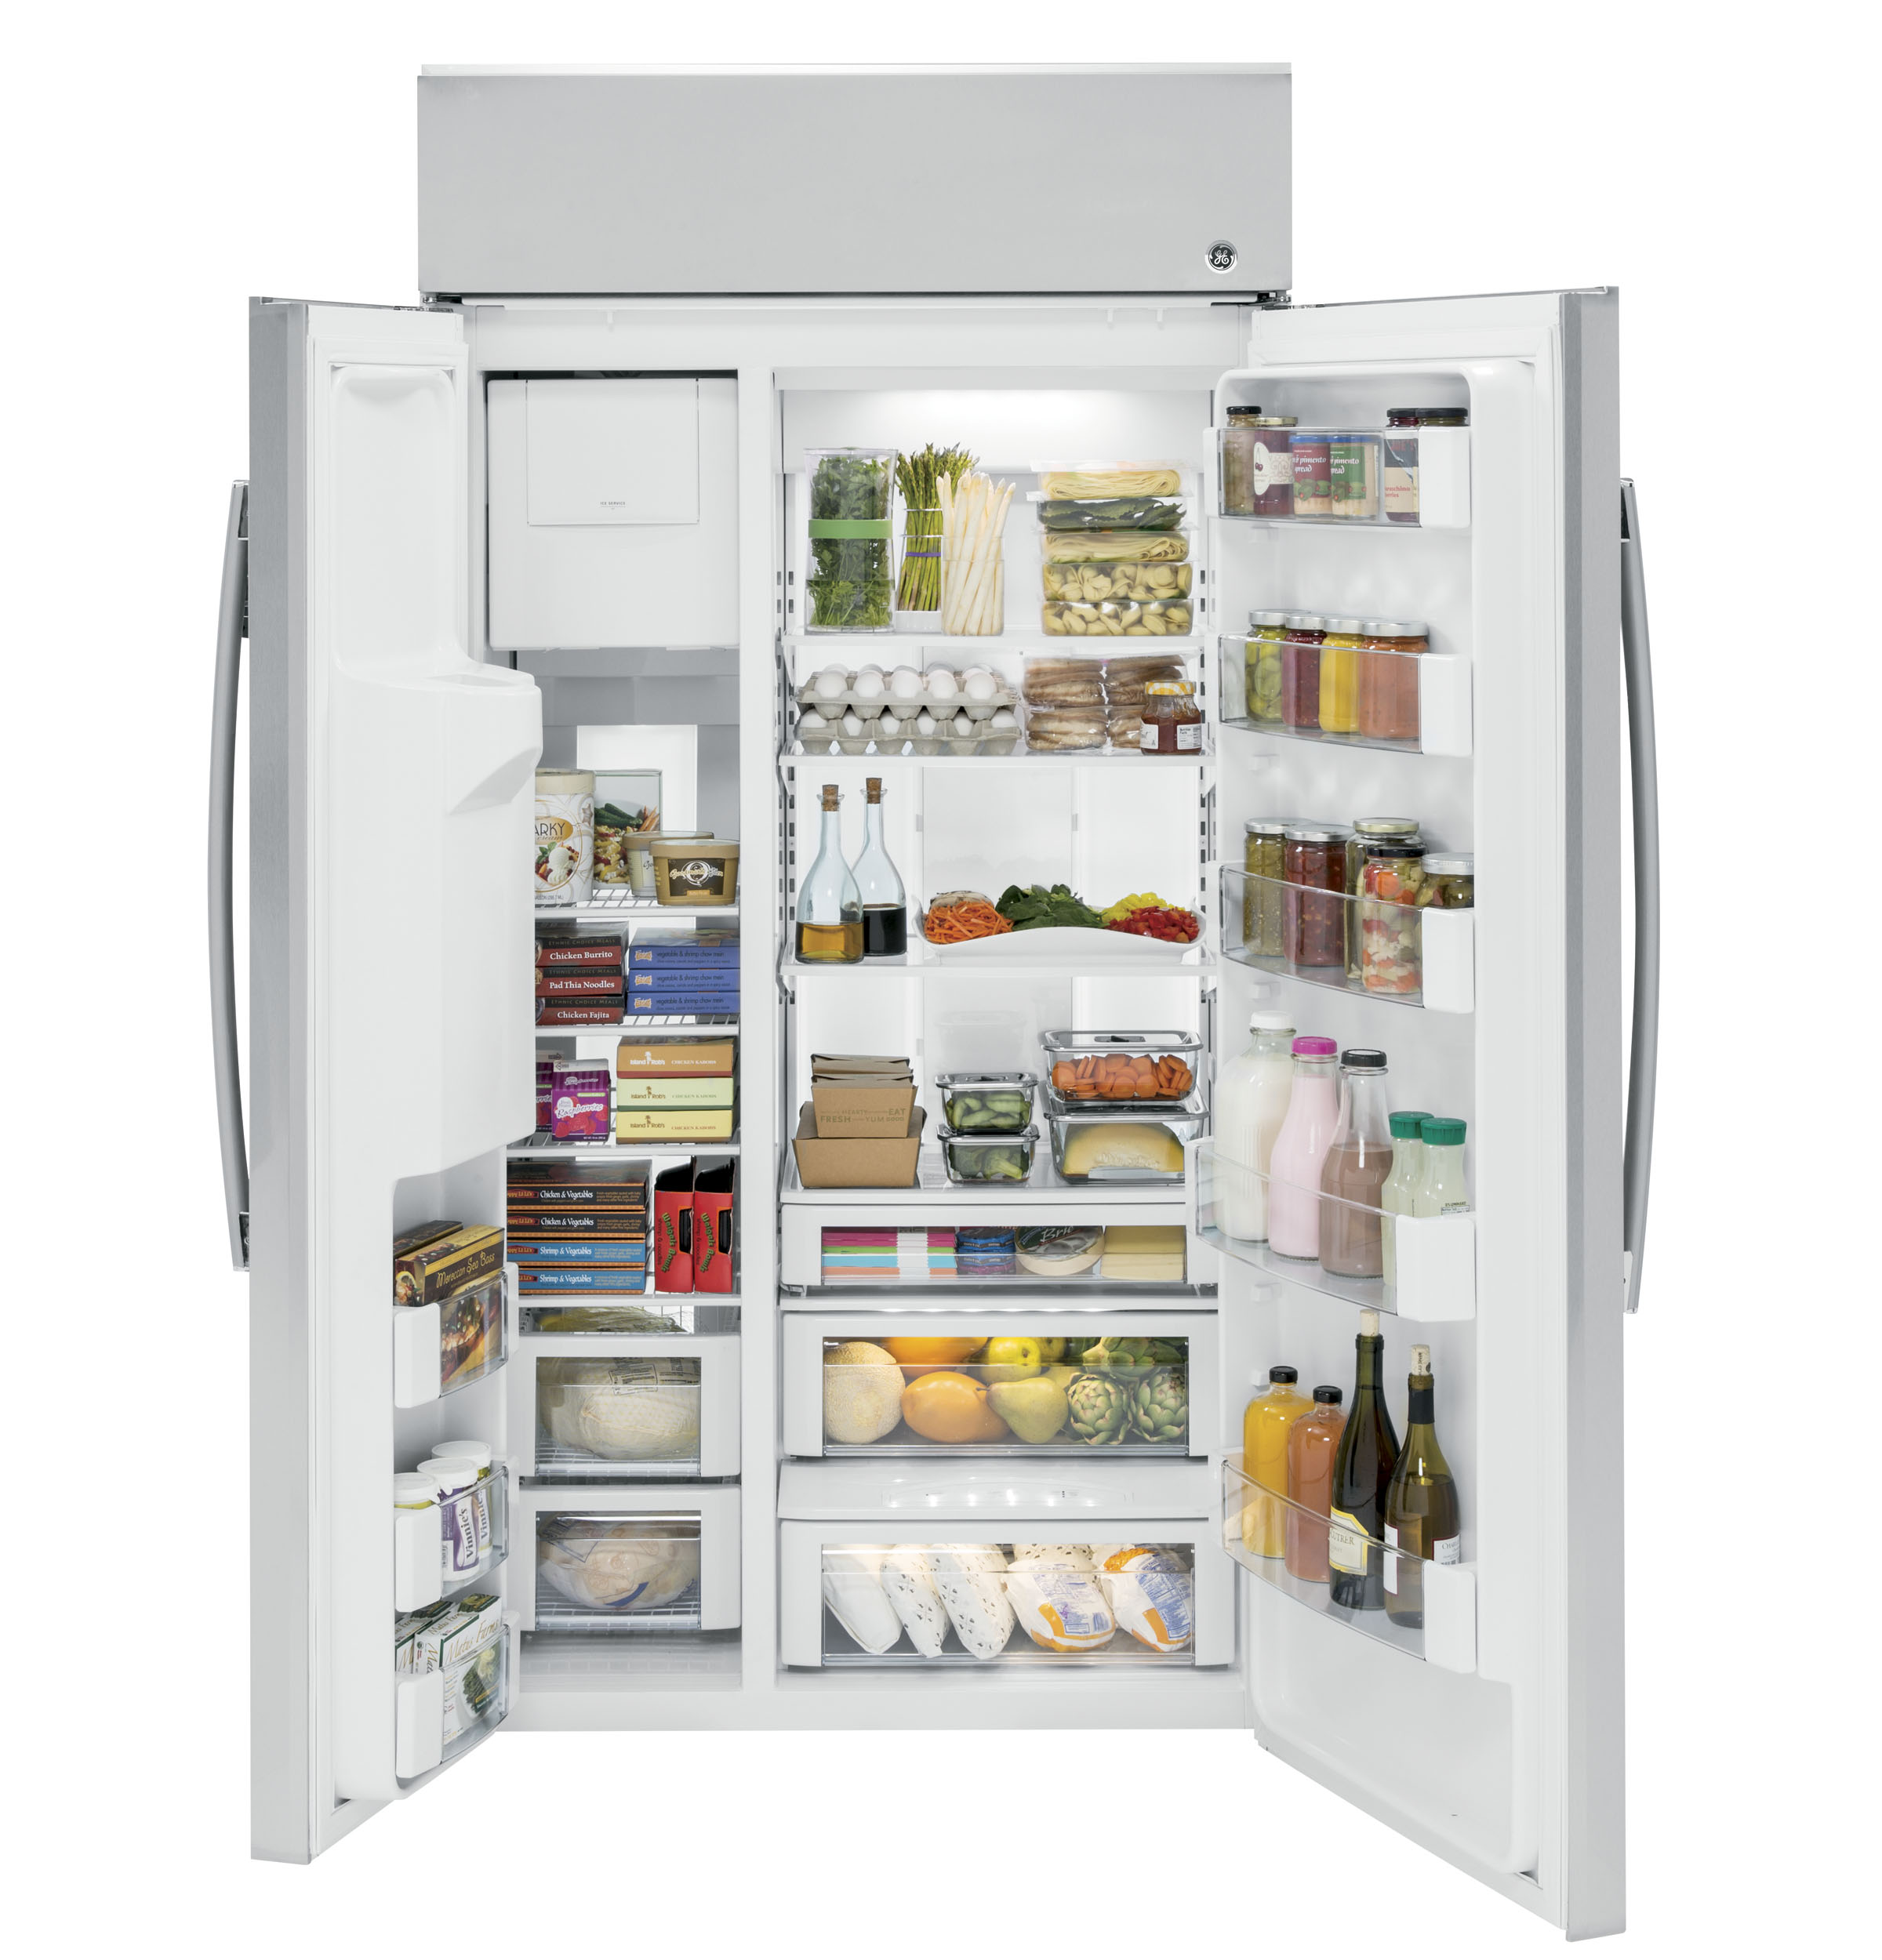 Side by side integrated fridge freezer - Product Image Product Image Product Image Product Image